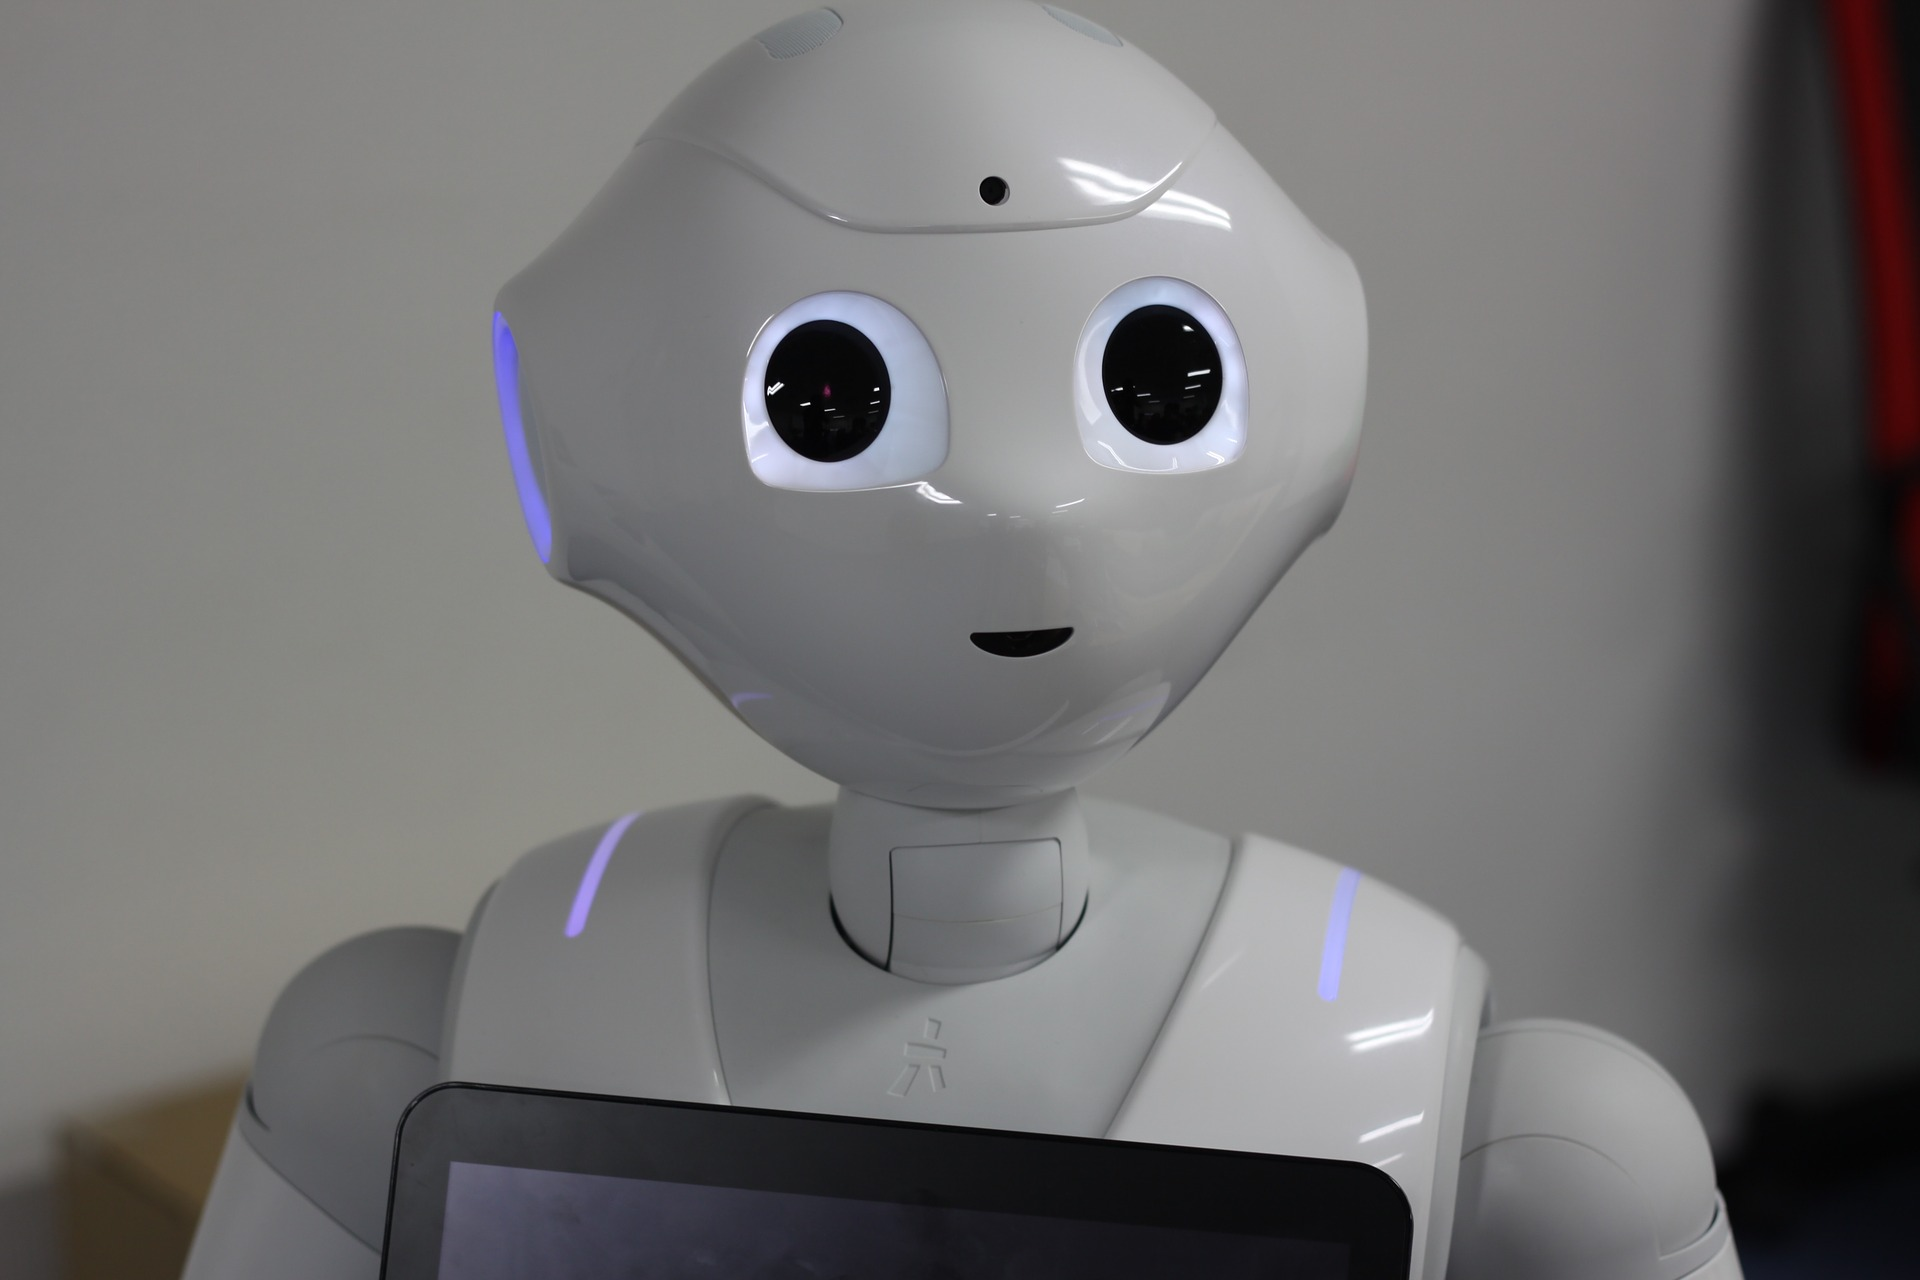 A plastic white robot with humanoid features and a touchscreen attached to its chest.